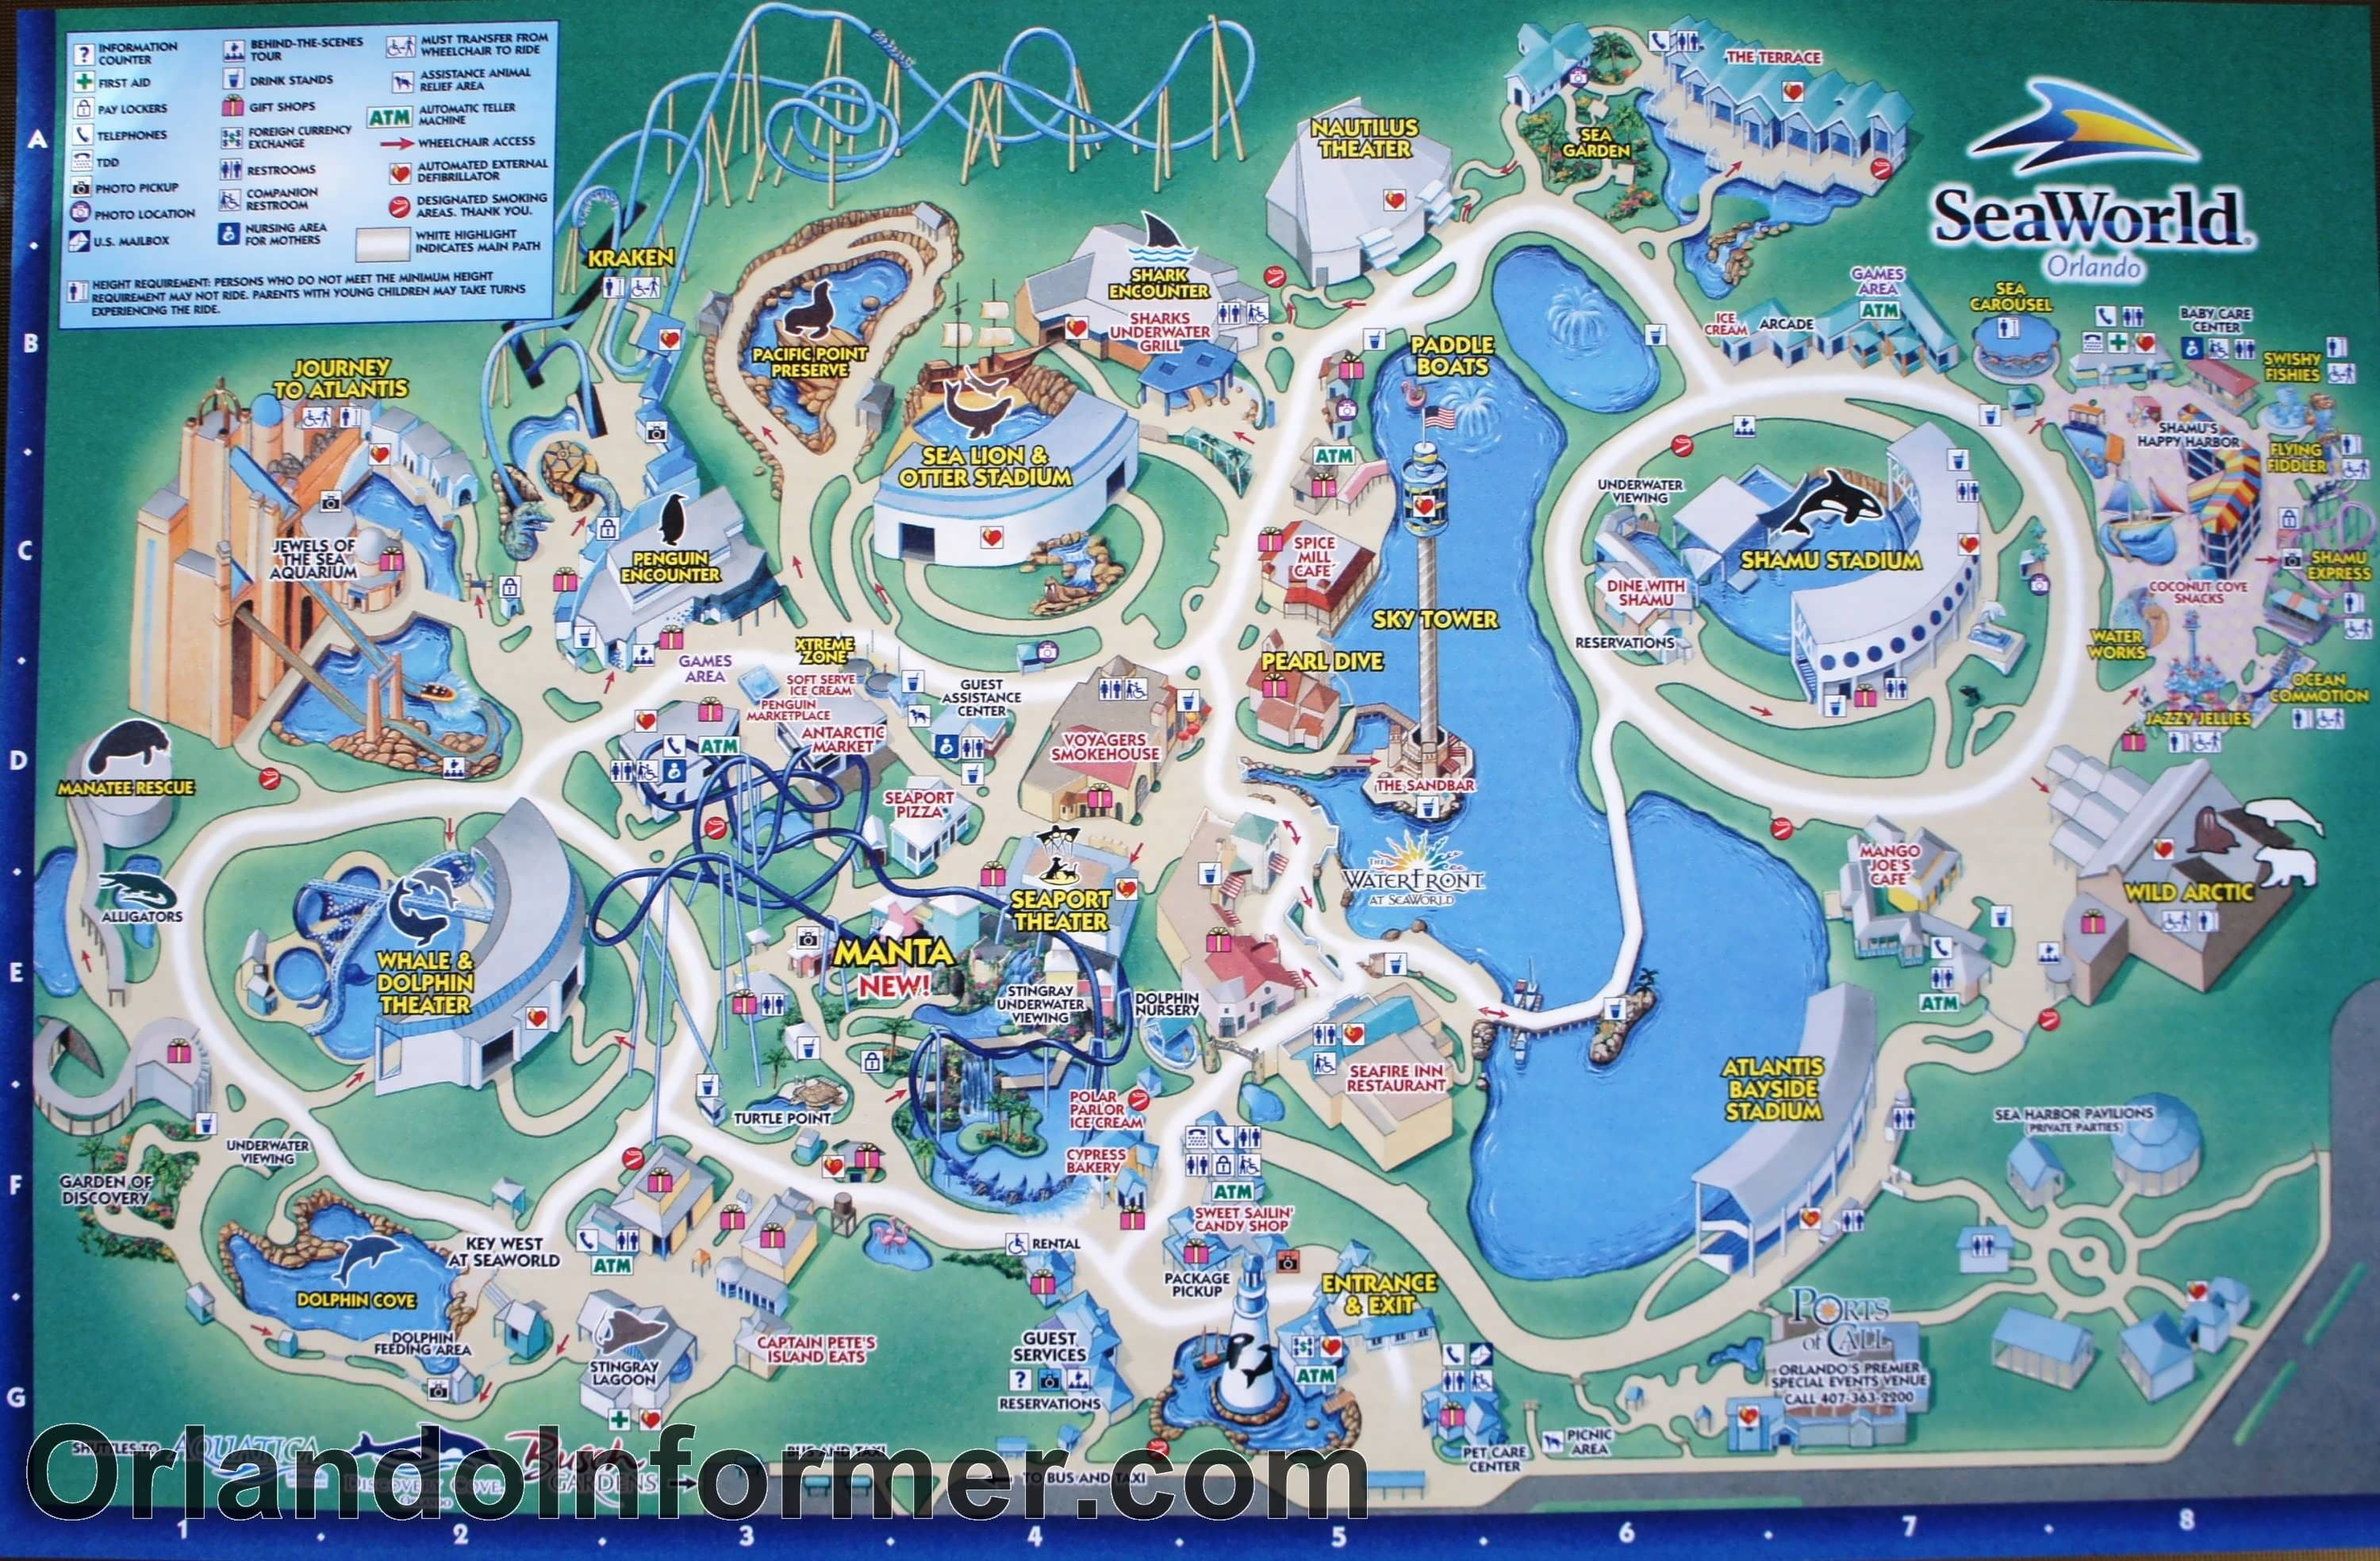 Seaworld San Antonio Aquatica Map Soakcitysdaerial ... on sesame place map, paramount's carowinds map, shavano park map, san antonio visitors map, san antonio medical center map, san antonio districts map, discovery cove map, san antonio county map, aquatica map, san antonio street map, magic kingdom map, morgan's wonderland map, government canyon state natural area map, san antonio location on map, san antonio hotel map, san antonio parks map, san antonio airport map, disneyland map, san antonio golf courses map, san antonio college map,